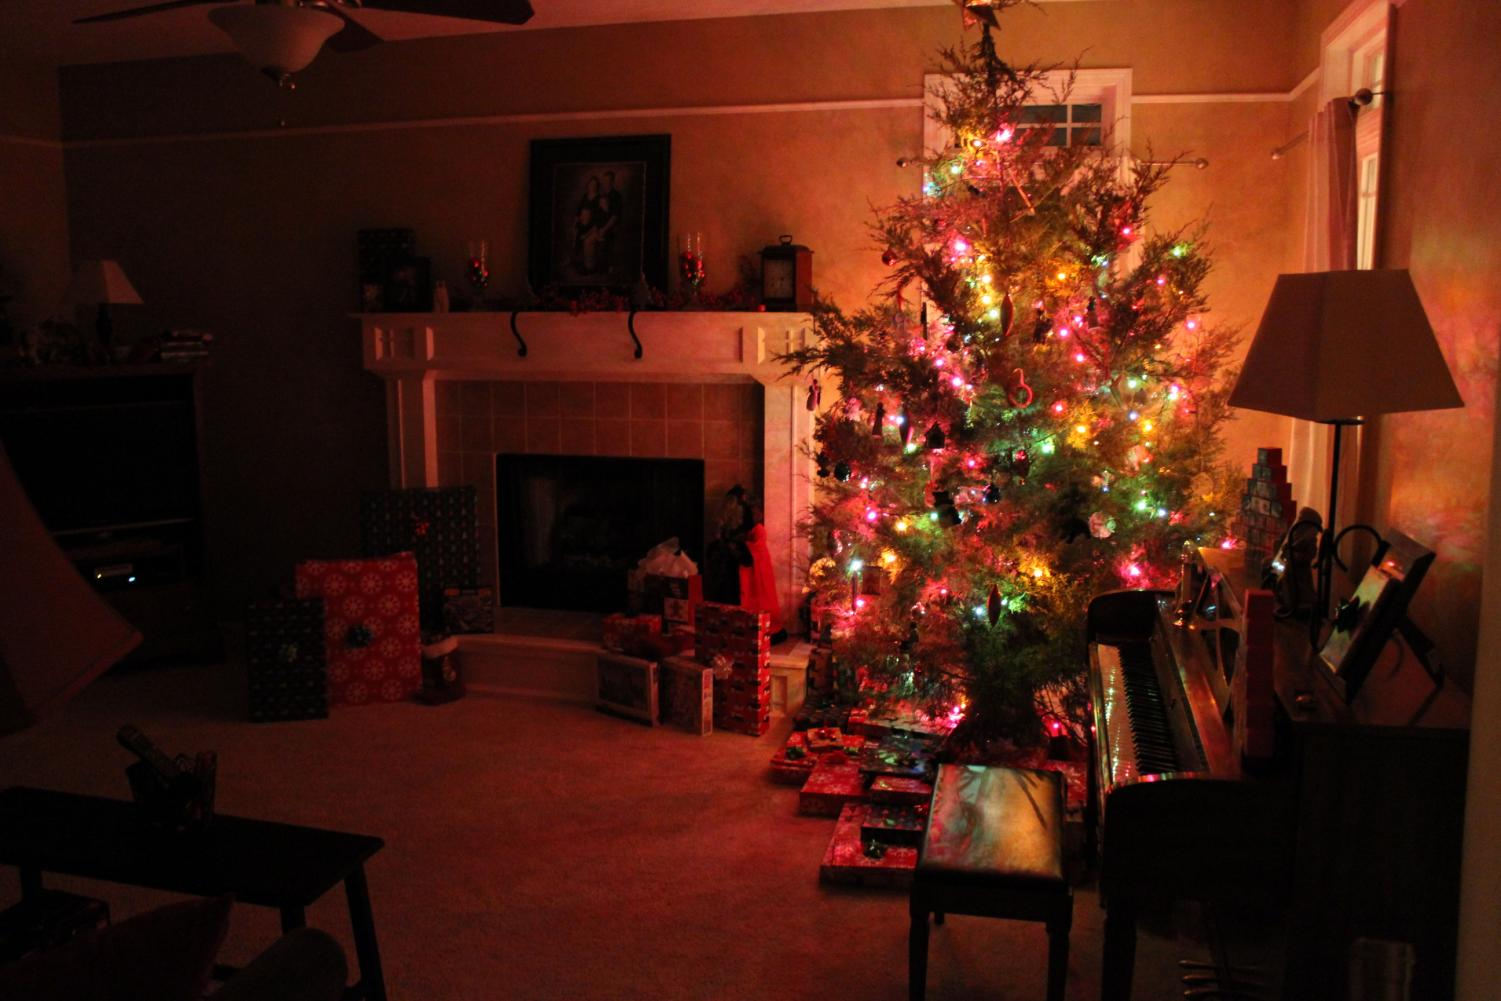 A Christmas tree is displayed with gifts surrounding.